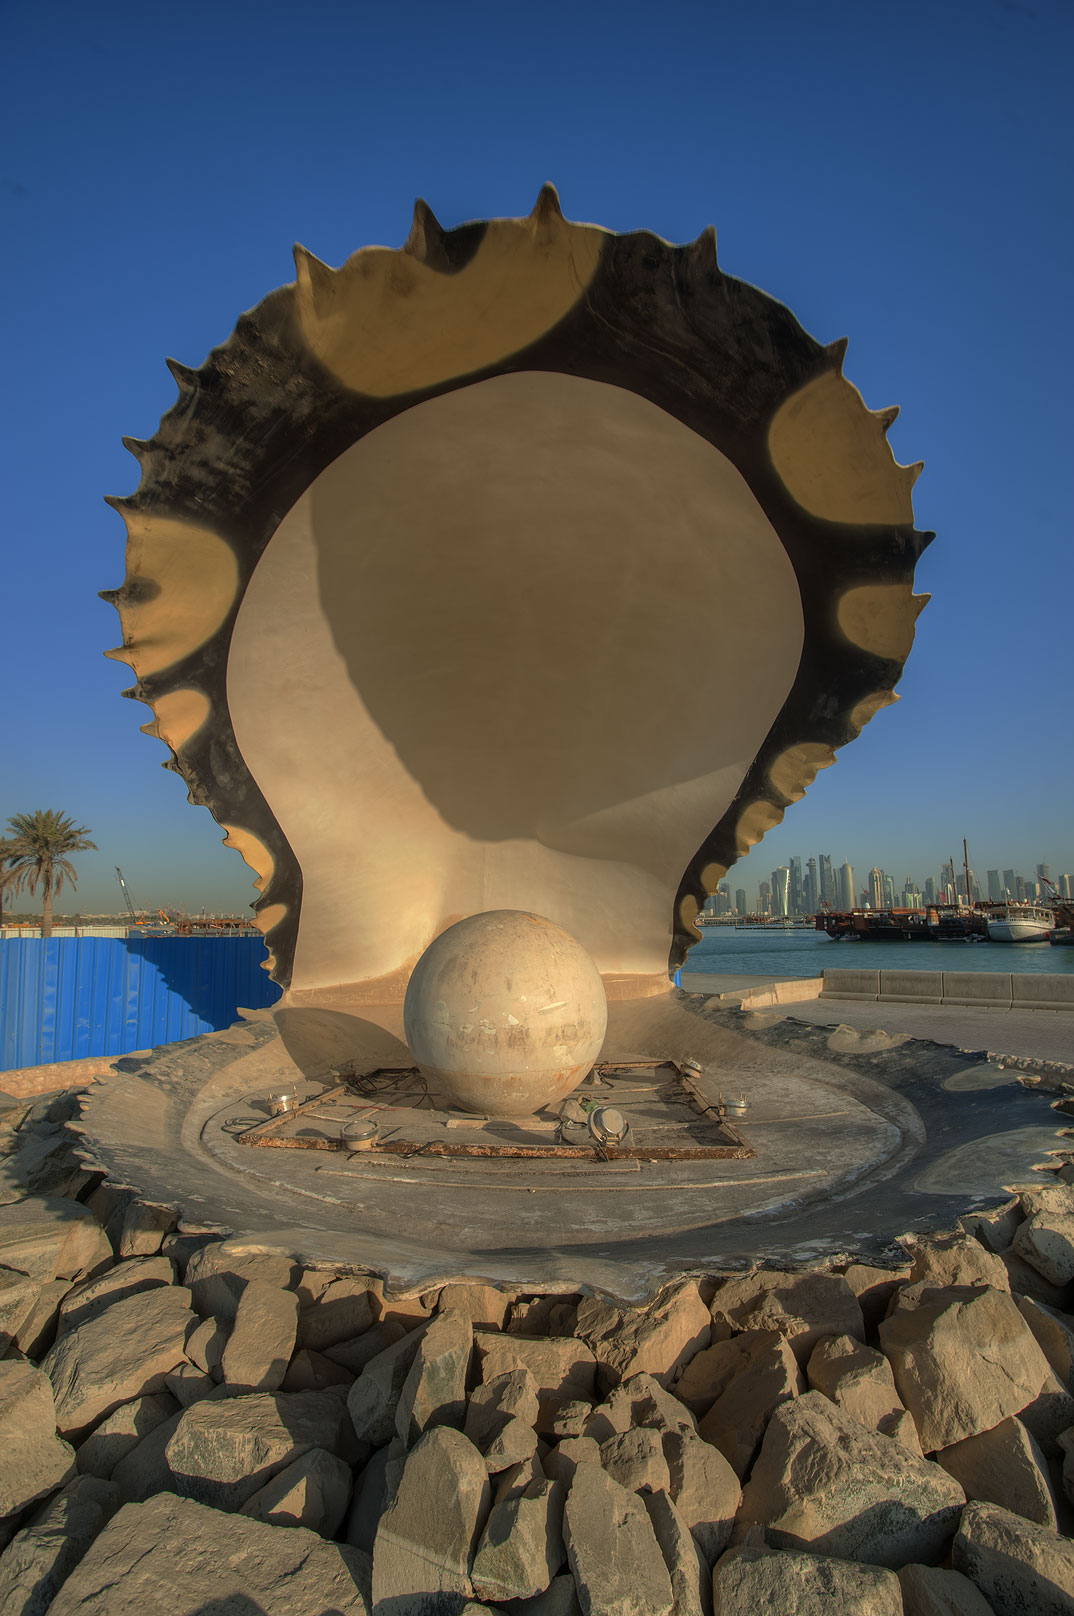 Oyster and Pearl Fountain on Corniche at morning. Doha, Qatar